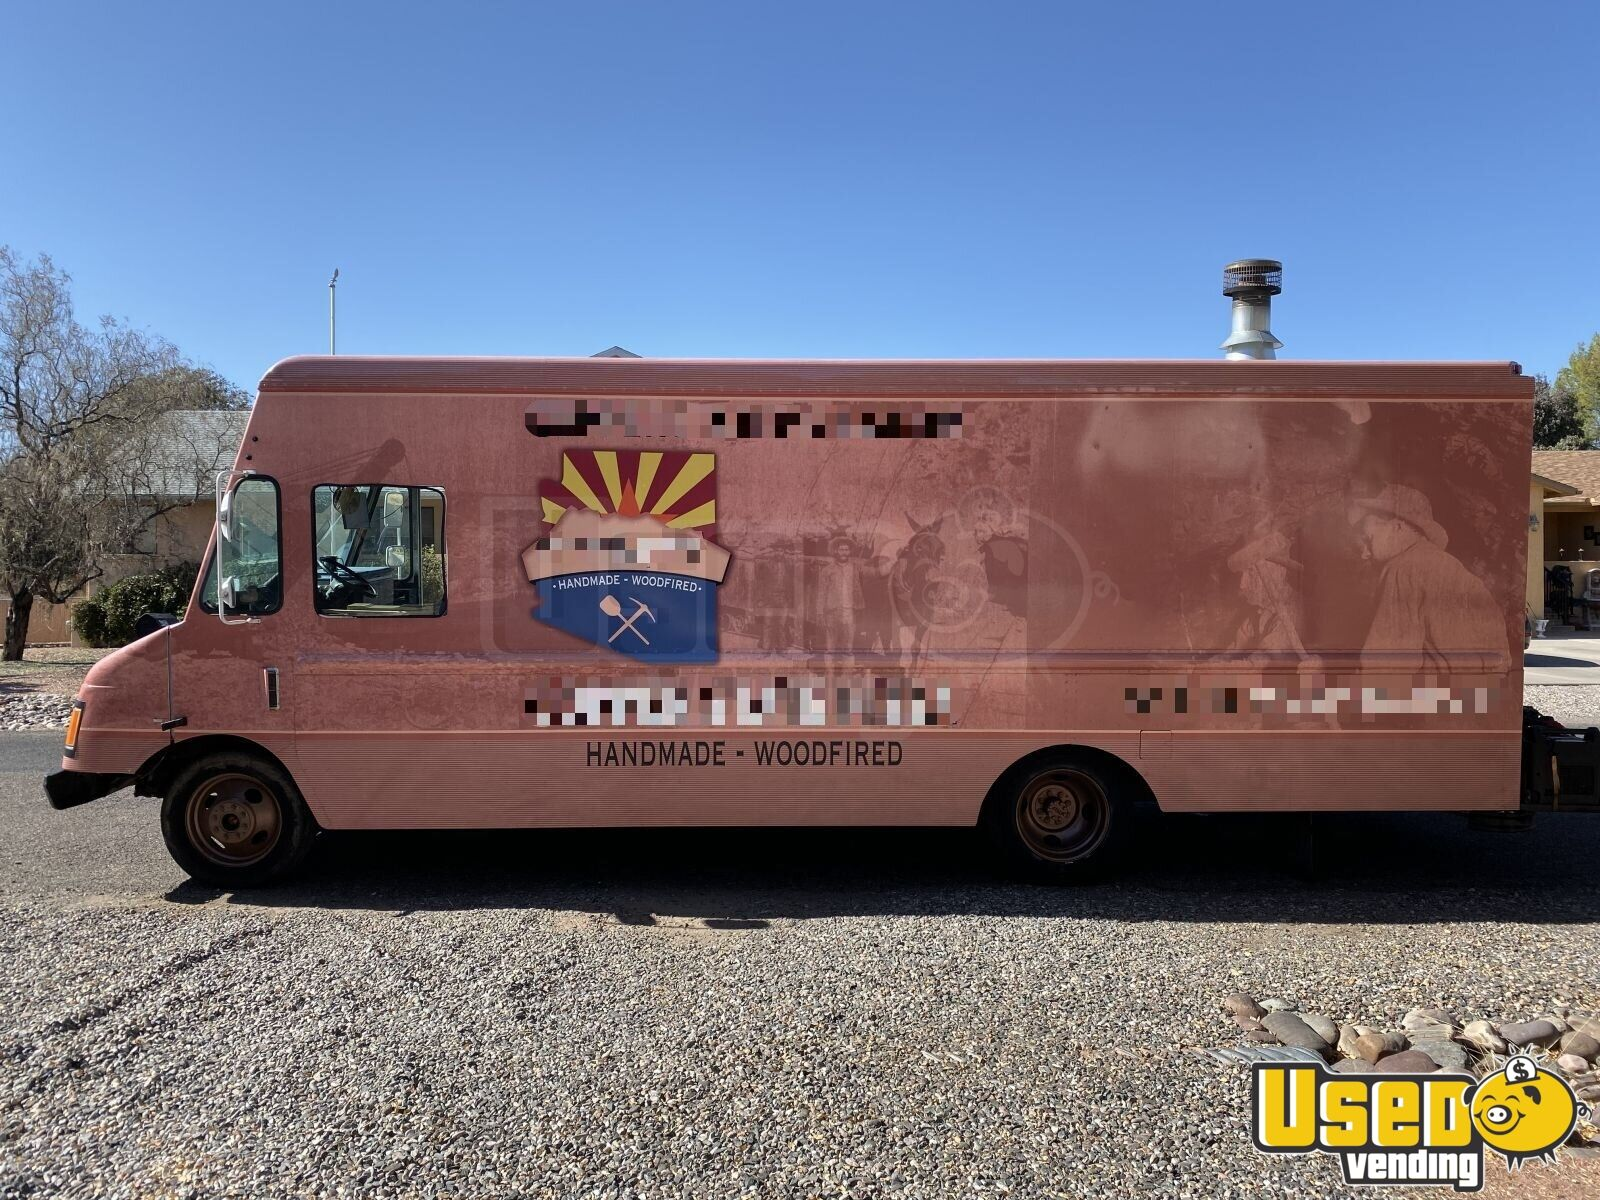 1995 Chevy Pizza Food Truck Concession Window Arizona Diesel Engine for Sale - 2